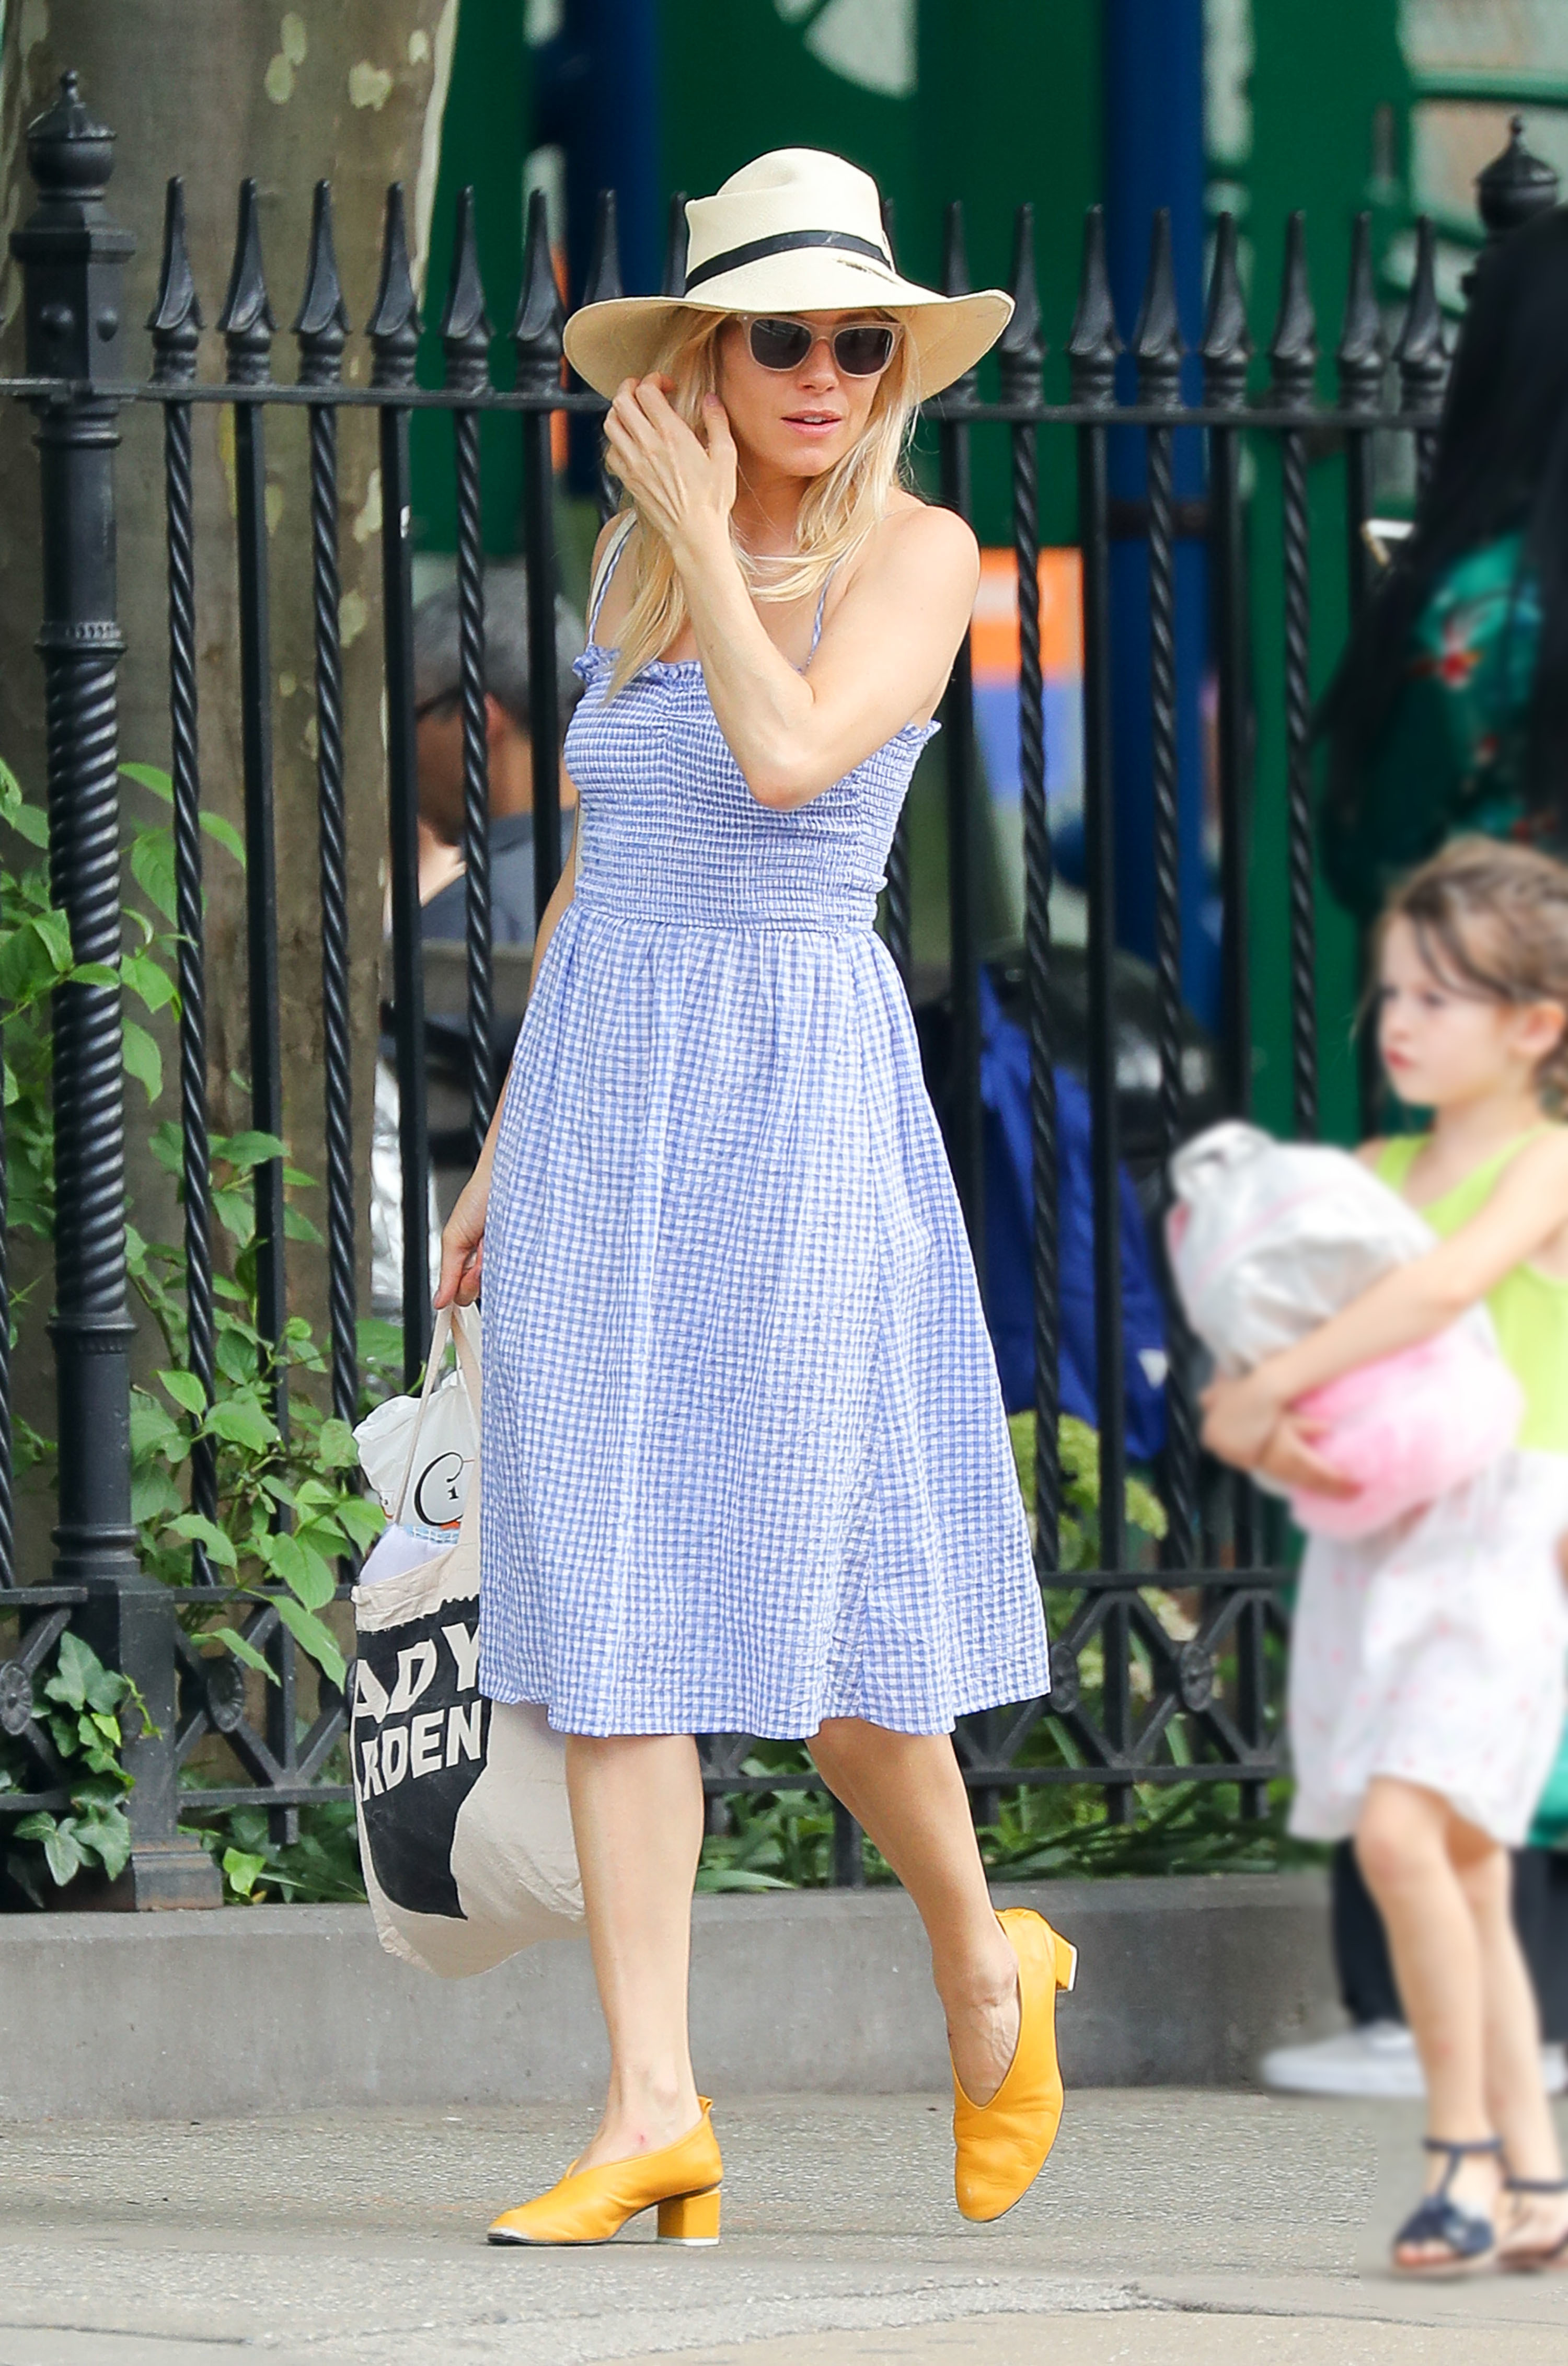 Sienna Miller looks stylish while out and about in New York City on June 8, 2018.